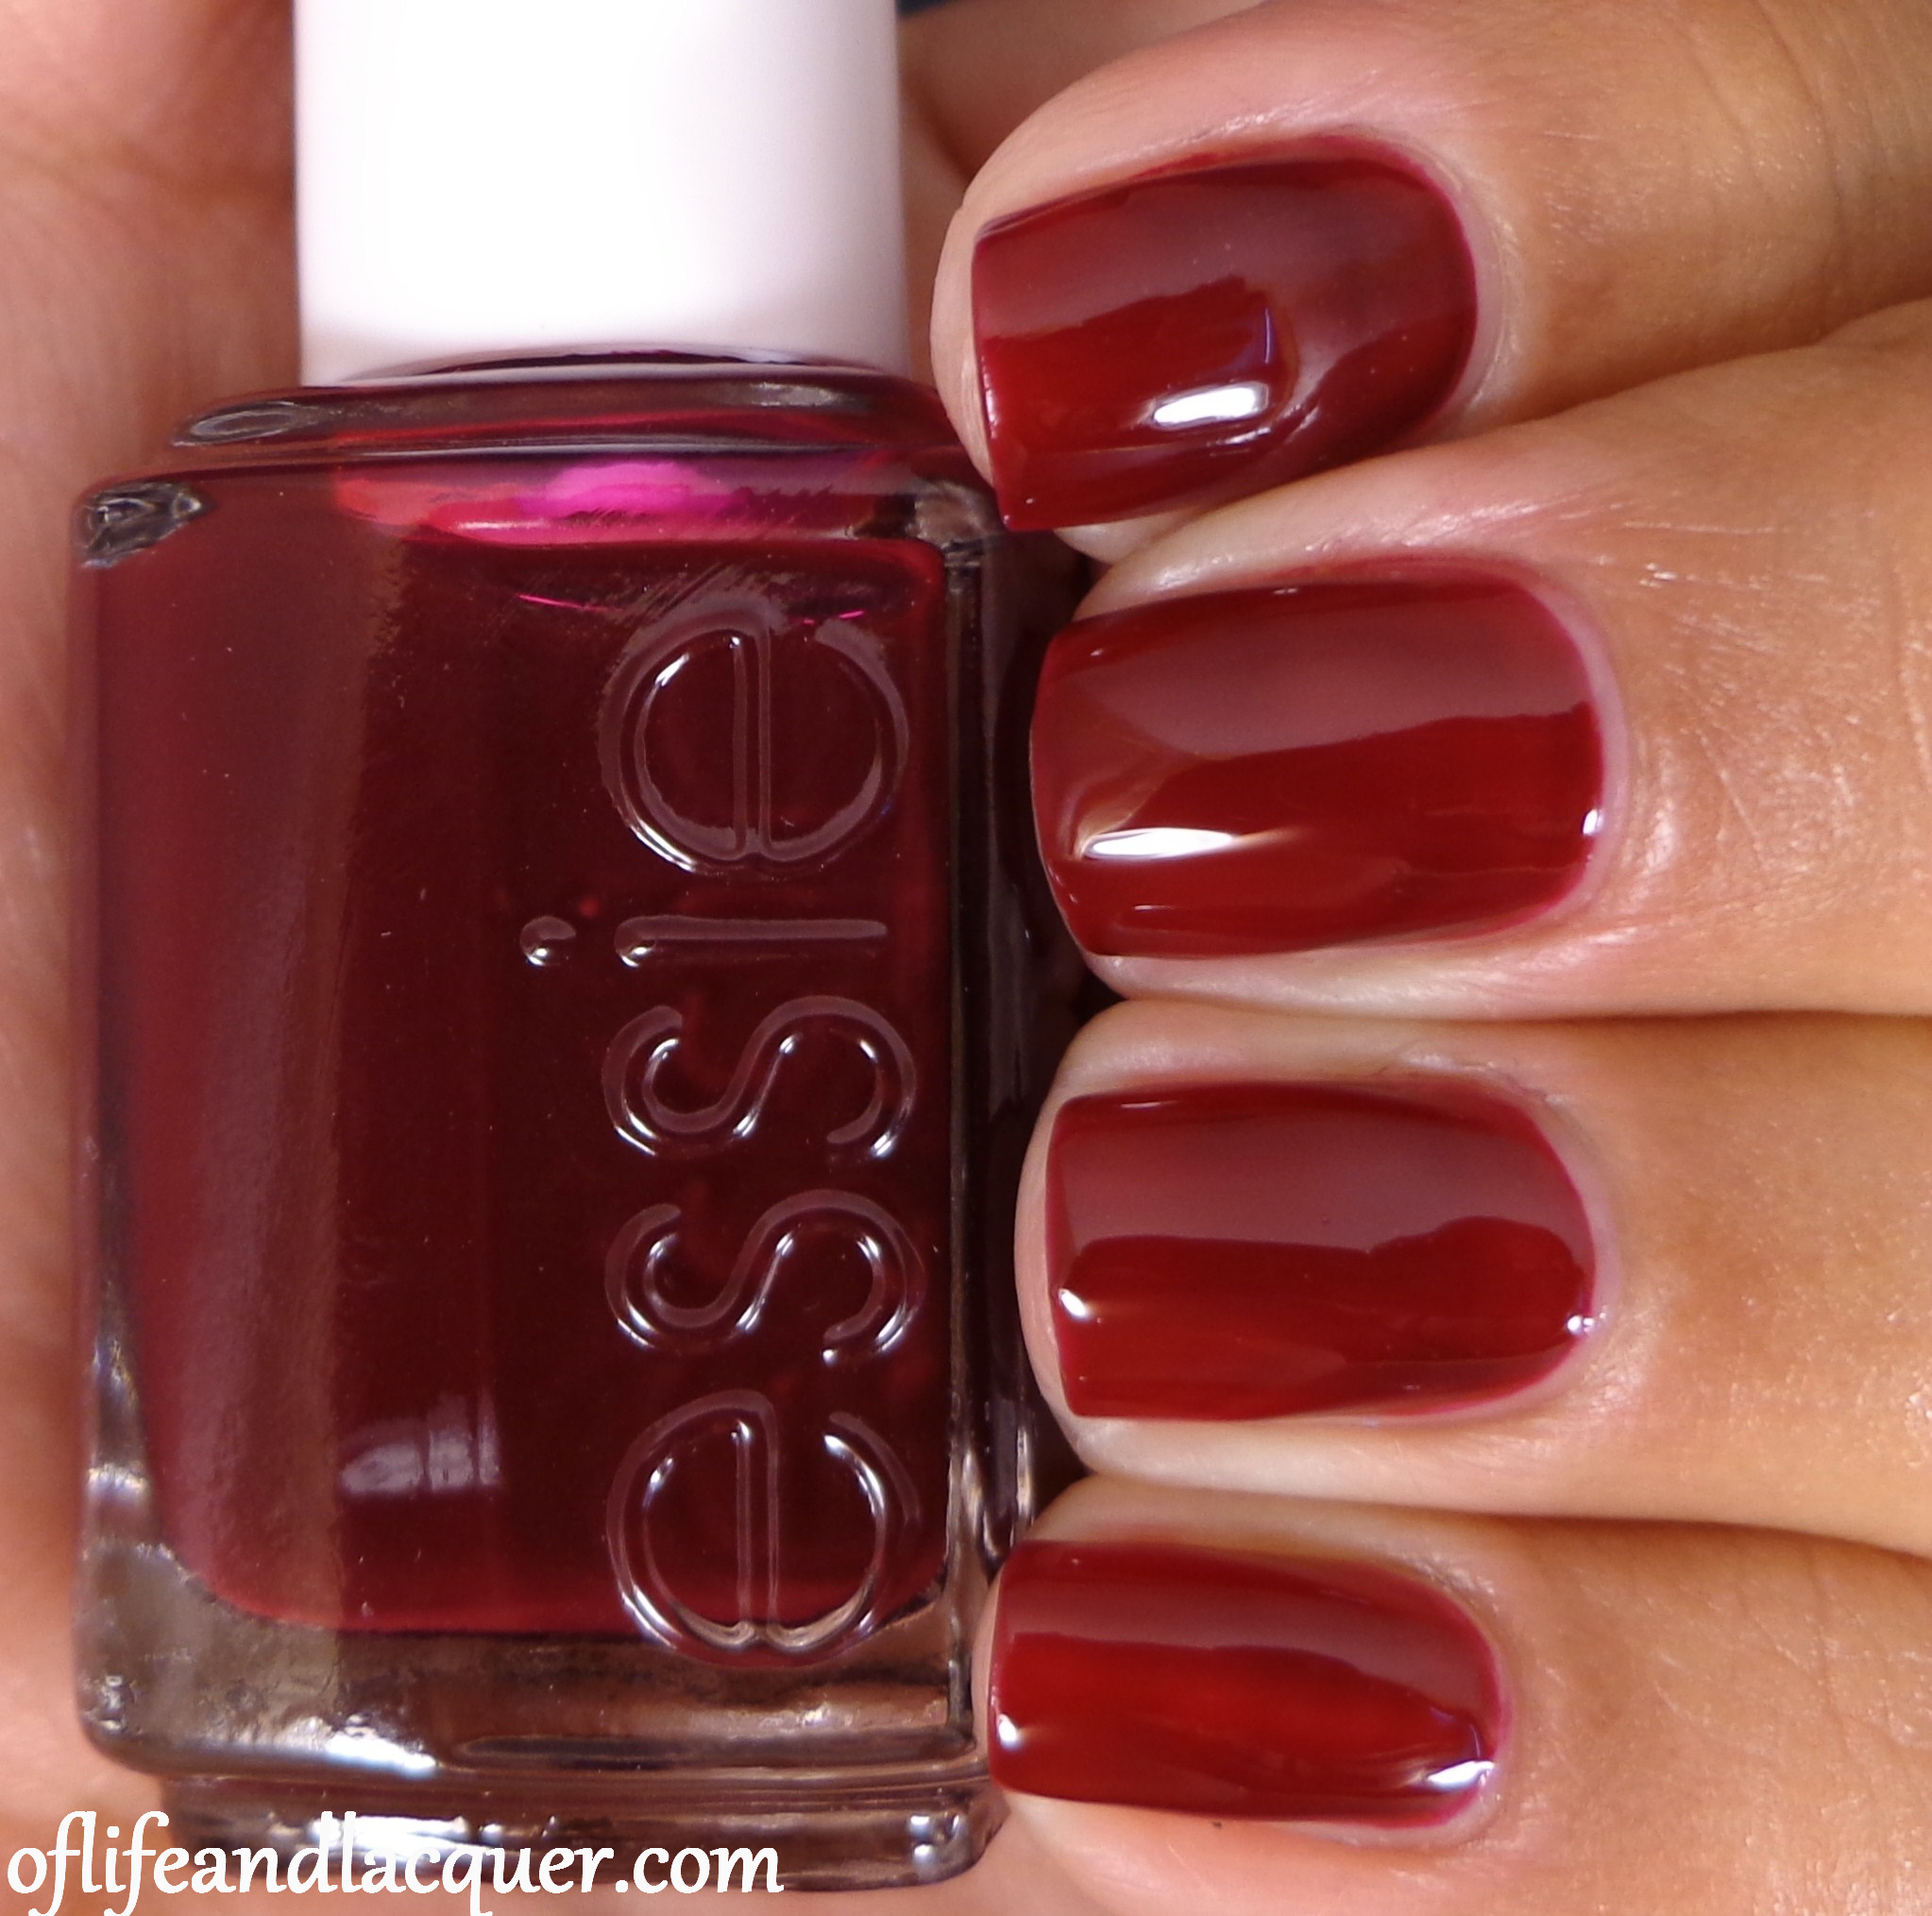 Essie Oldies - Of Life and Lacquer